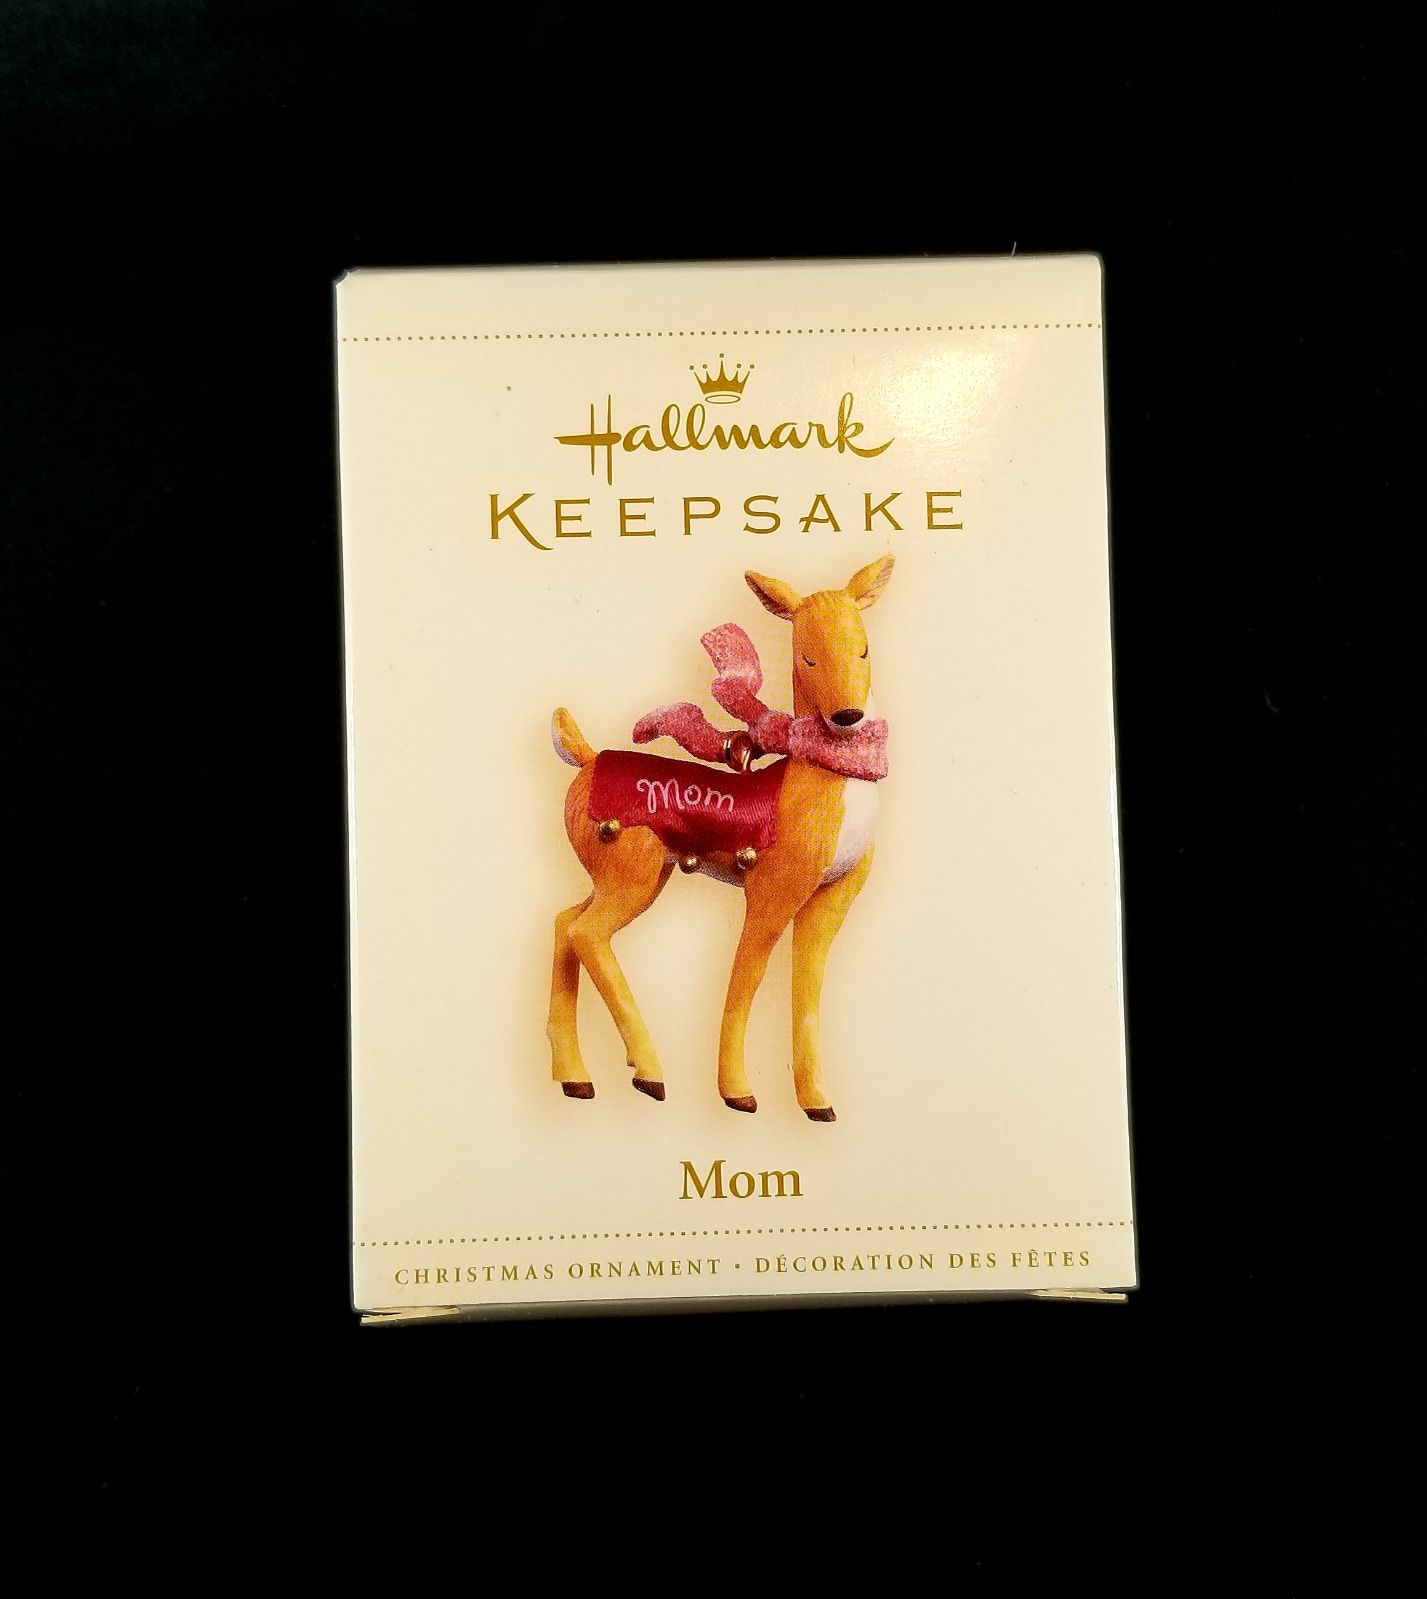 Hallmark Keepsake Christmas Ornament Mom